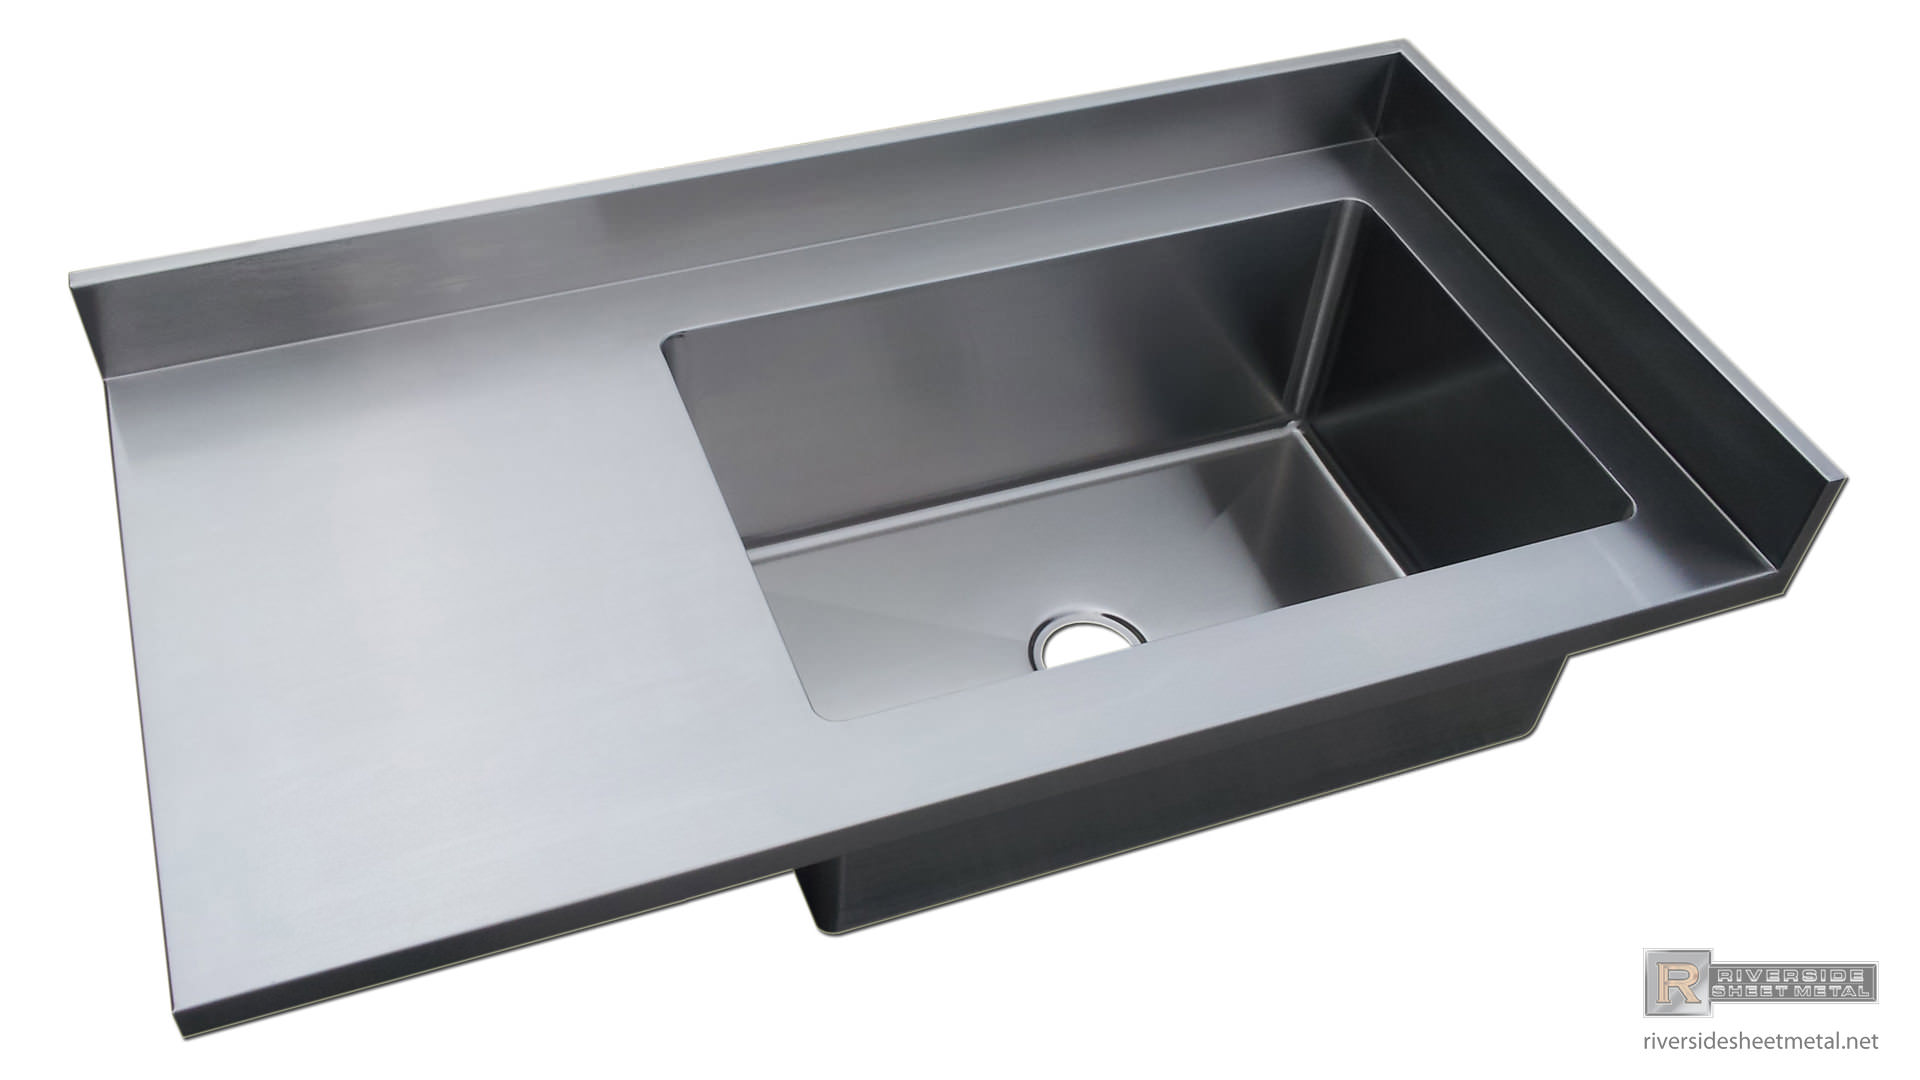 Stainless Steel #4 Finish Counter Top With Sink & Backsplash